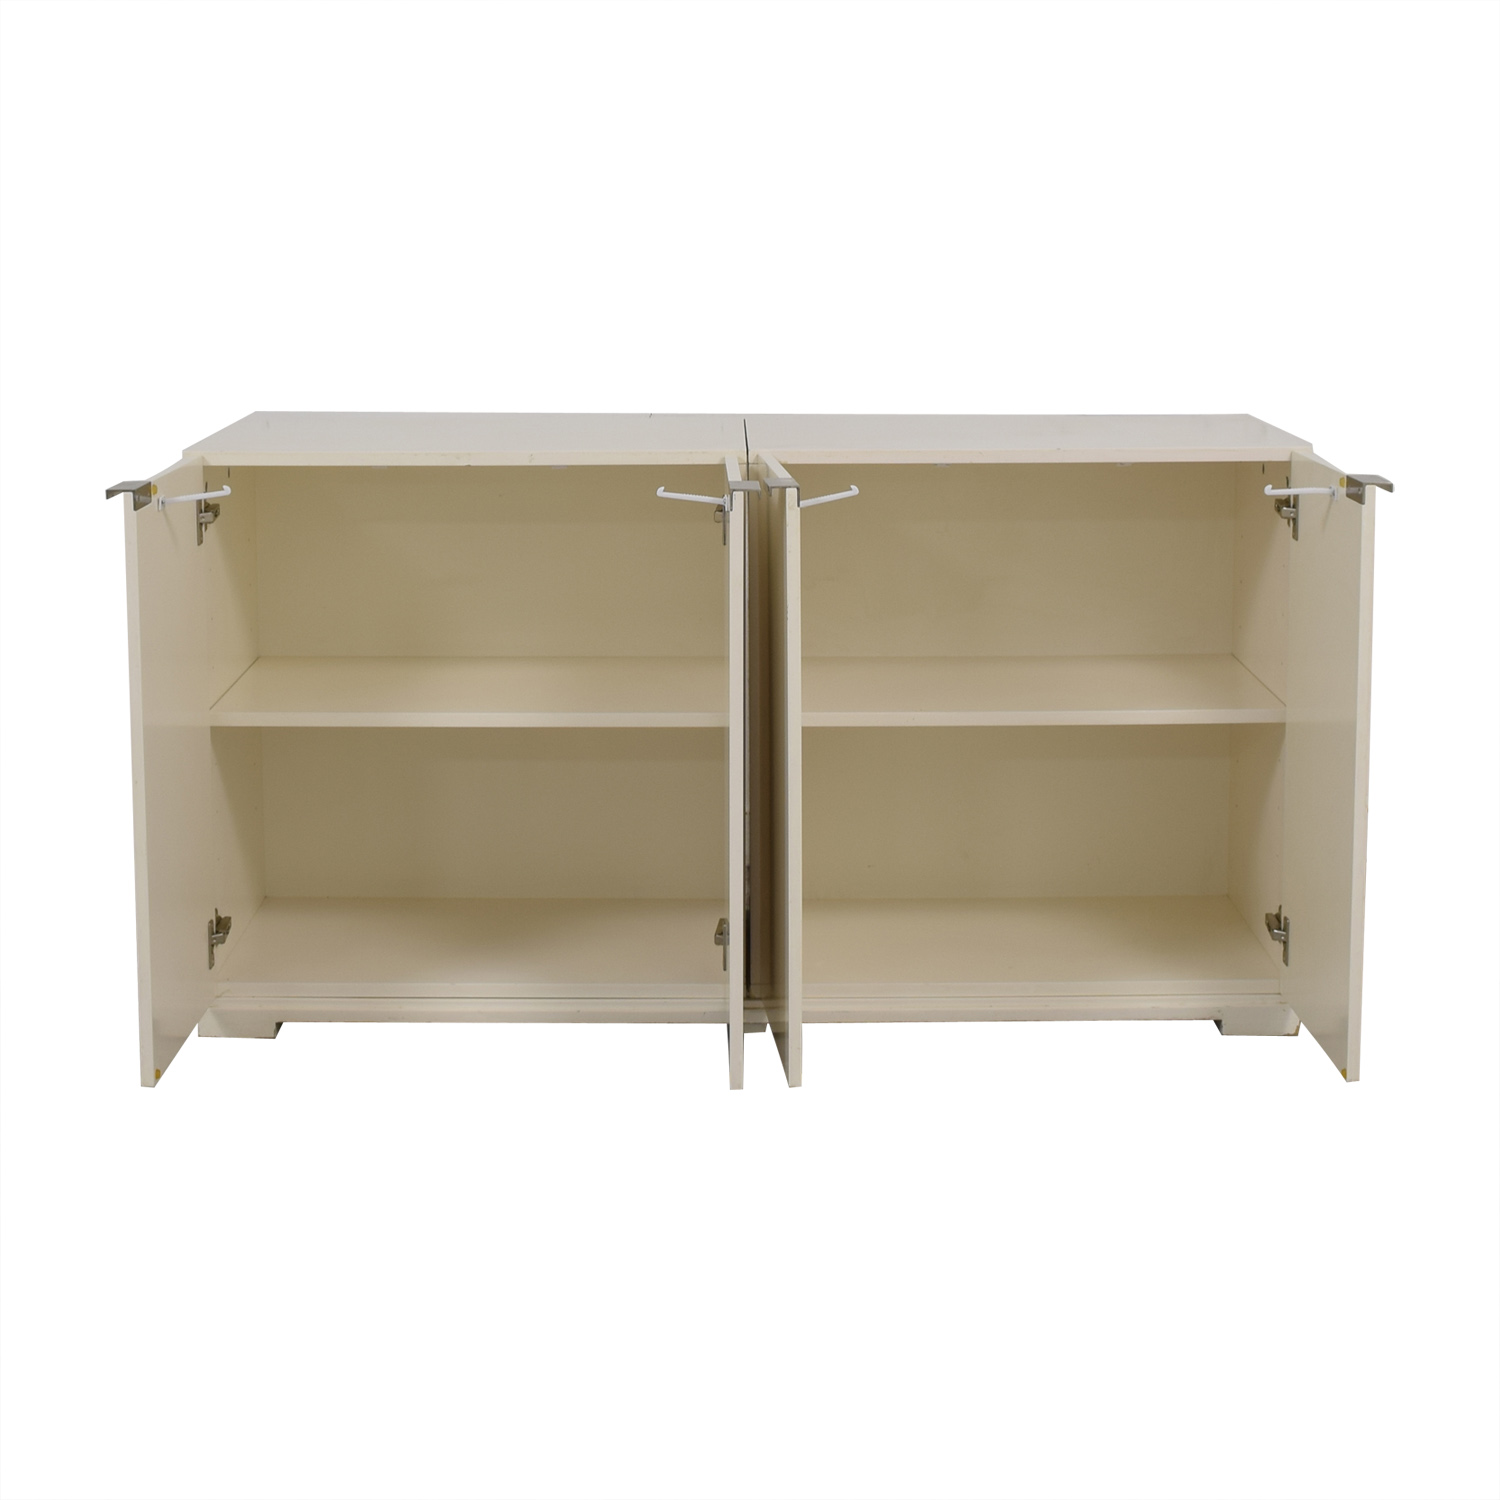 West Elm West Elm White Four-Door Buffet Storage